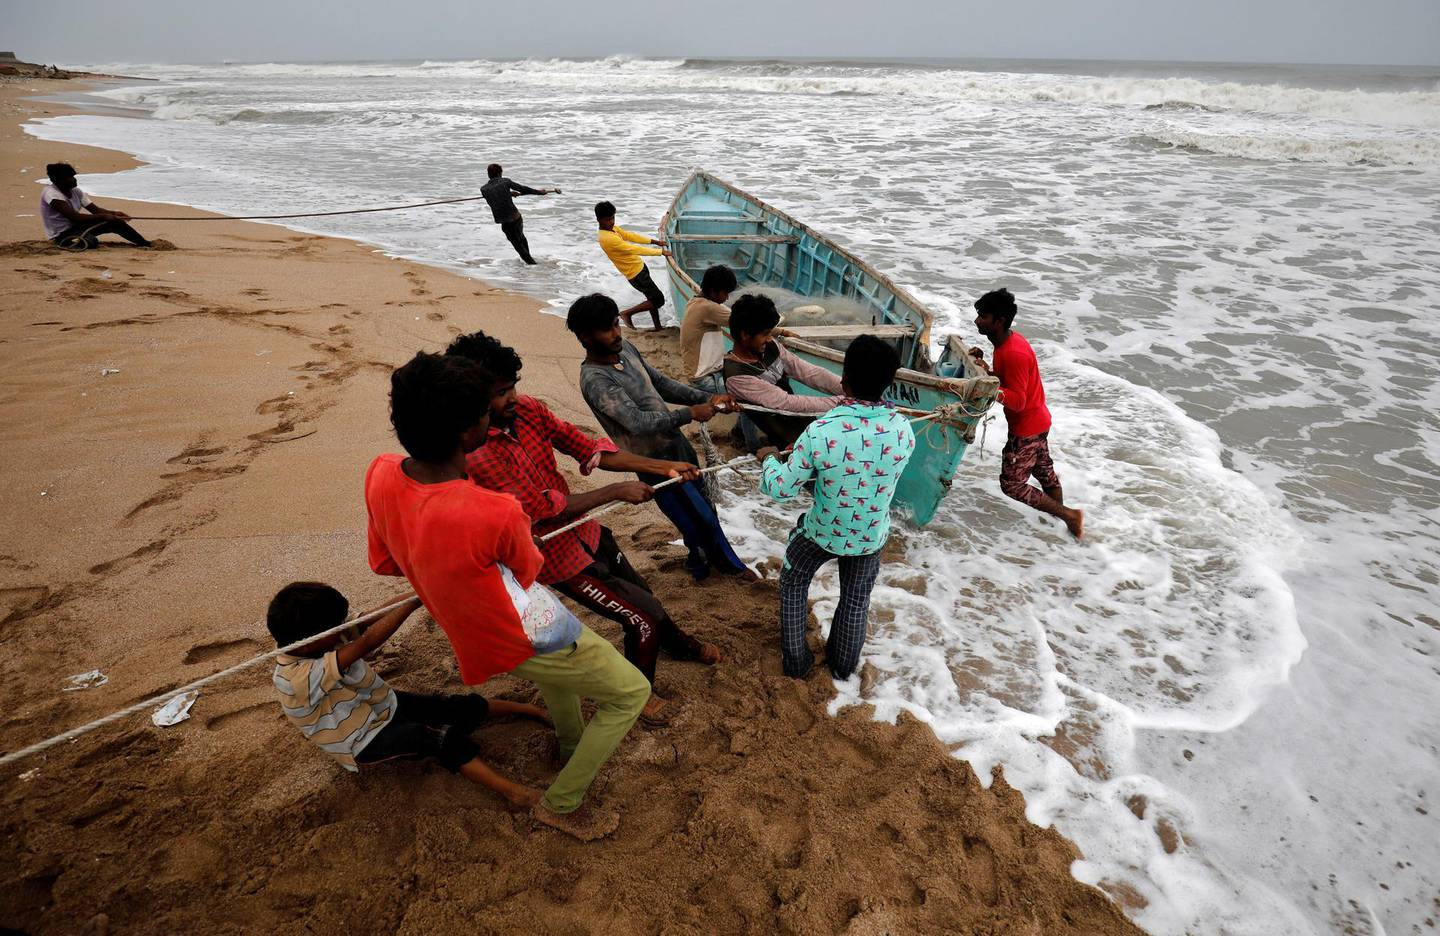 People move a fishing boat to a safer place along the shore ahead of Cyclone Tauktae in Veraval in the western state of Gujarat, India, May 17, 2021. REUTERS/Amit Dave